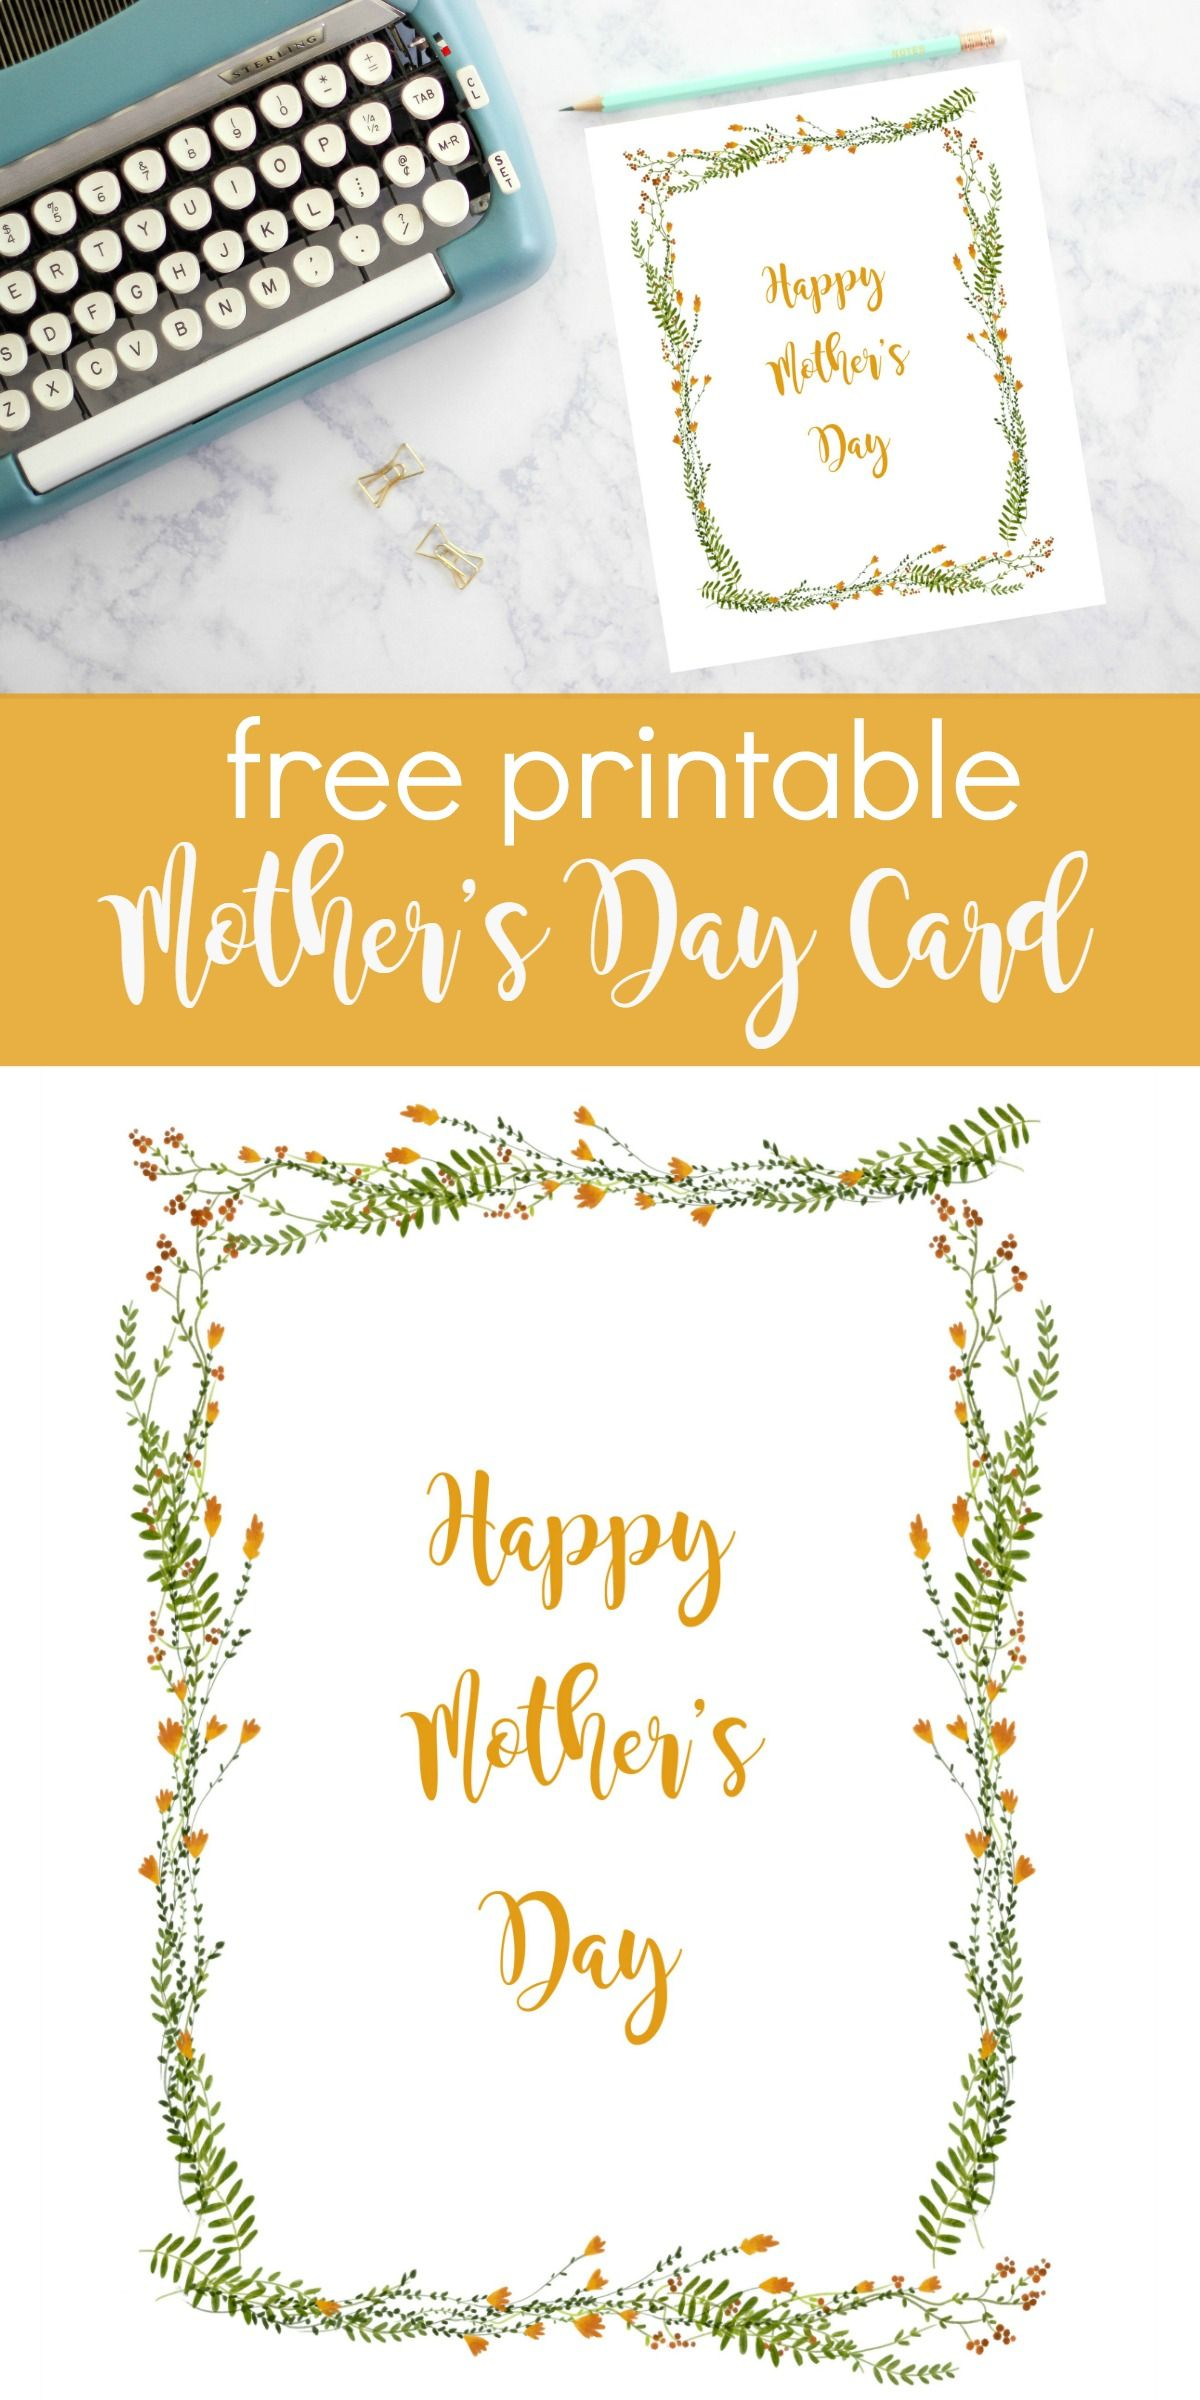 Happy Mother S Day Printable Card Mothers Day Cards Printable Cards Happy Mothers Day